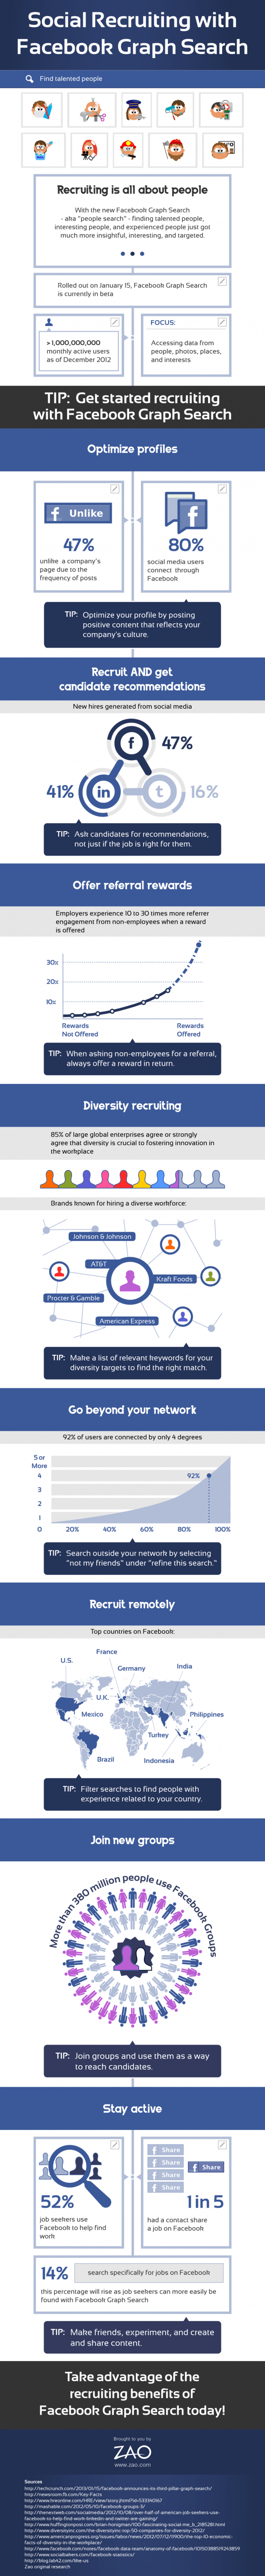 how-to-facebook-recruit-social-graph